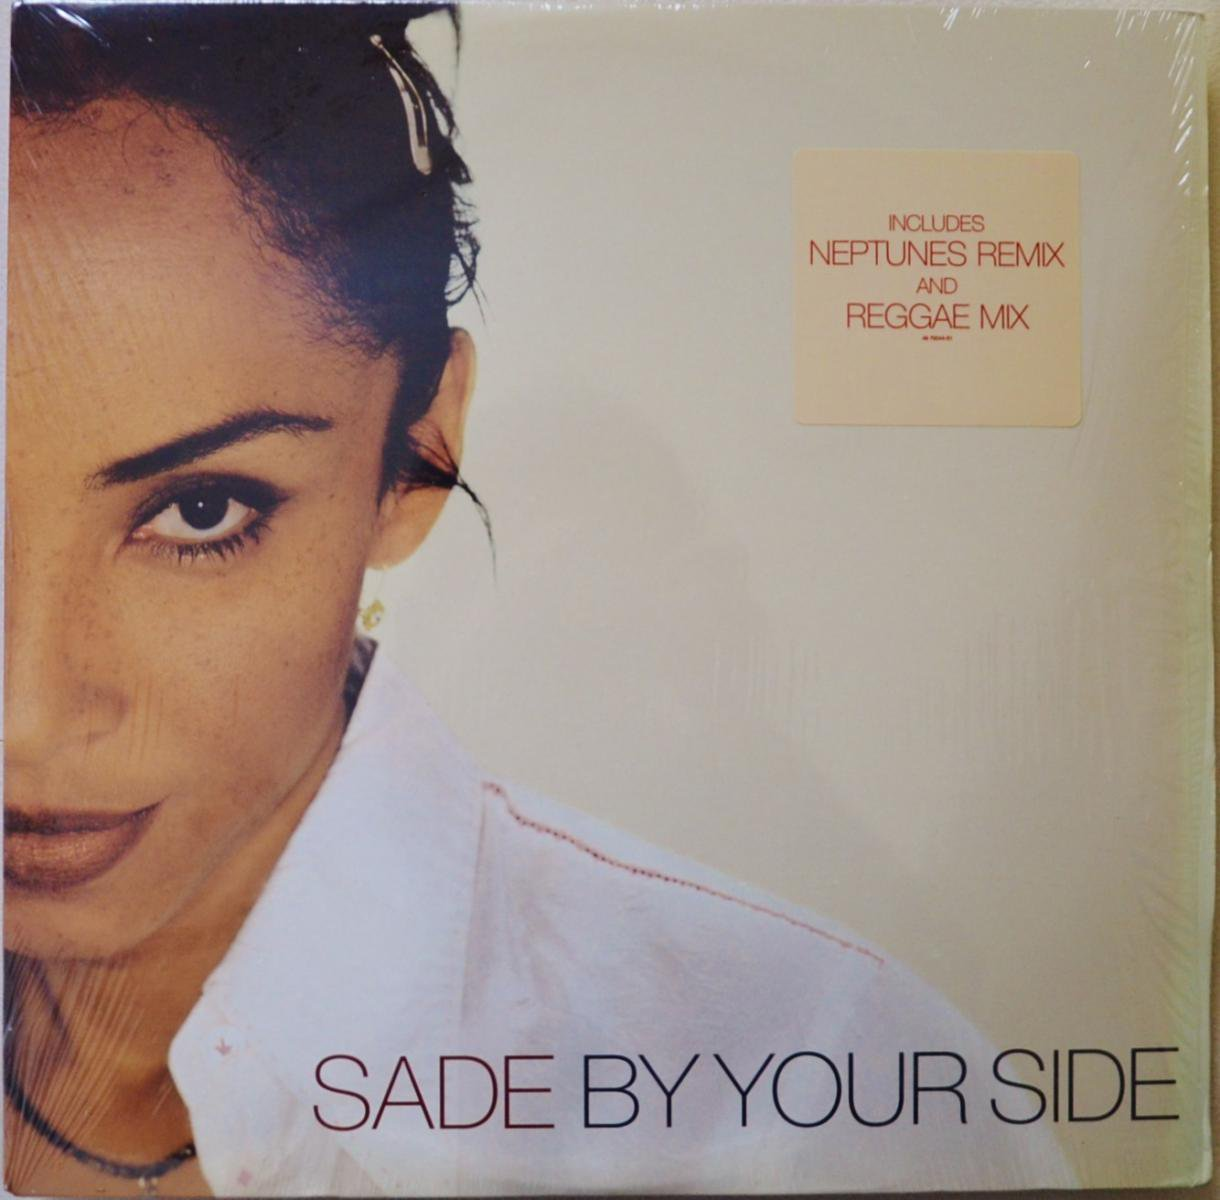 SADE / BY YOUR SIDE (12